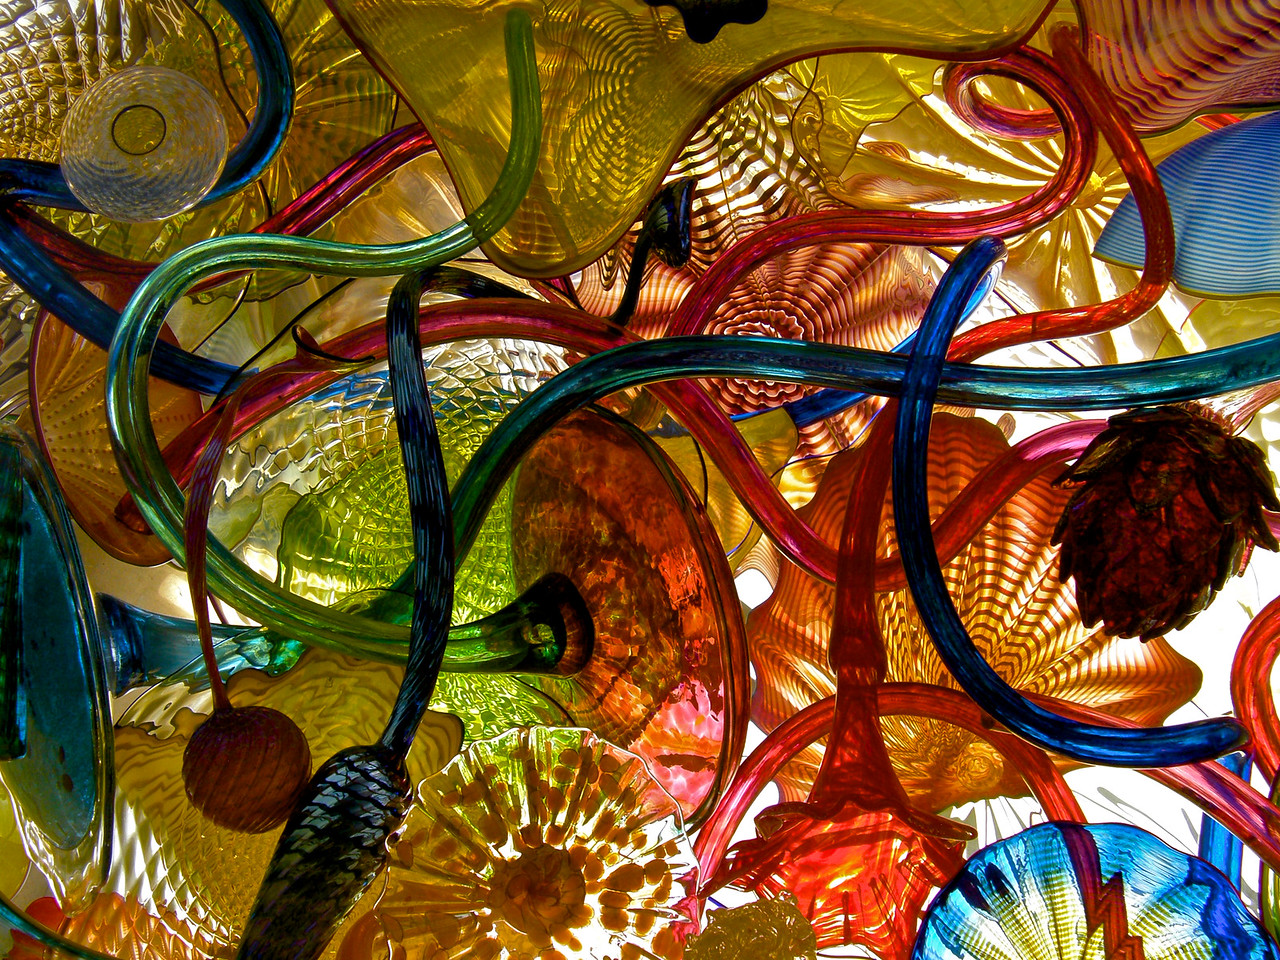 No glass artist is more famouser than Dale Chihuly. He and Sarah are alums of the U of Puget Sound, dontcha know. This is in the ceiling of one of eight galleries at the Chihuly Glass Museum in Seattle.